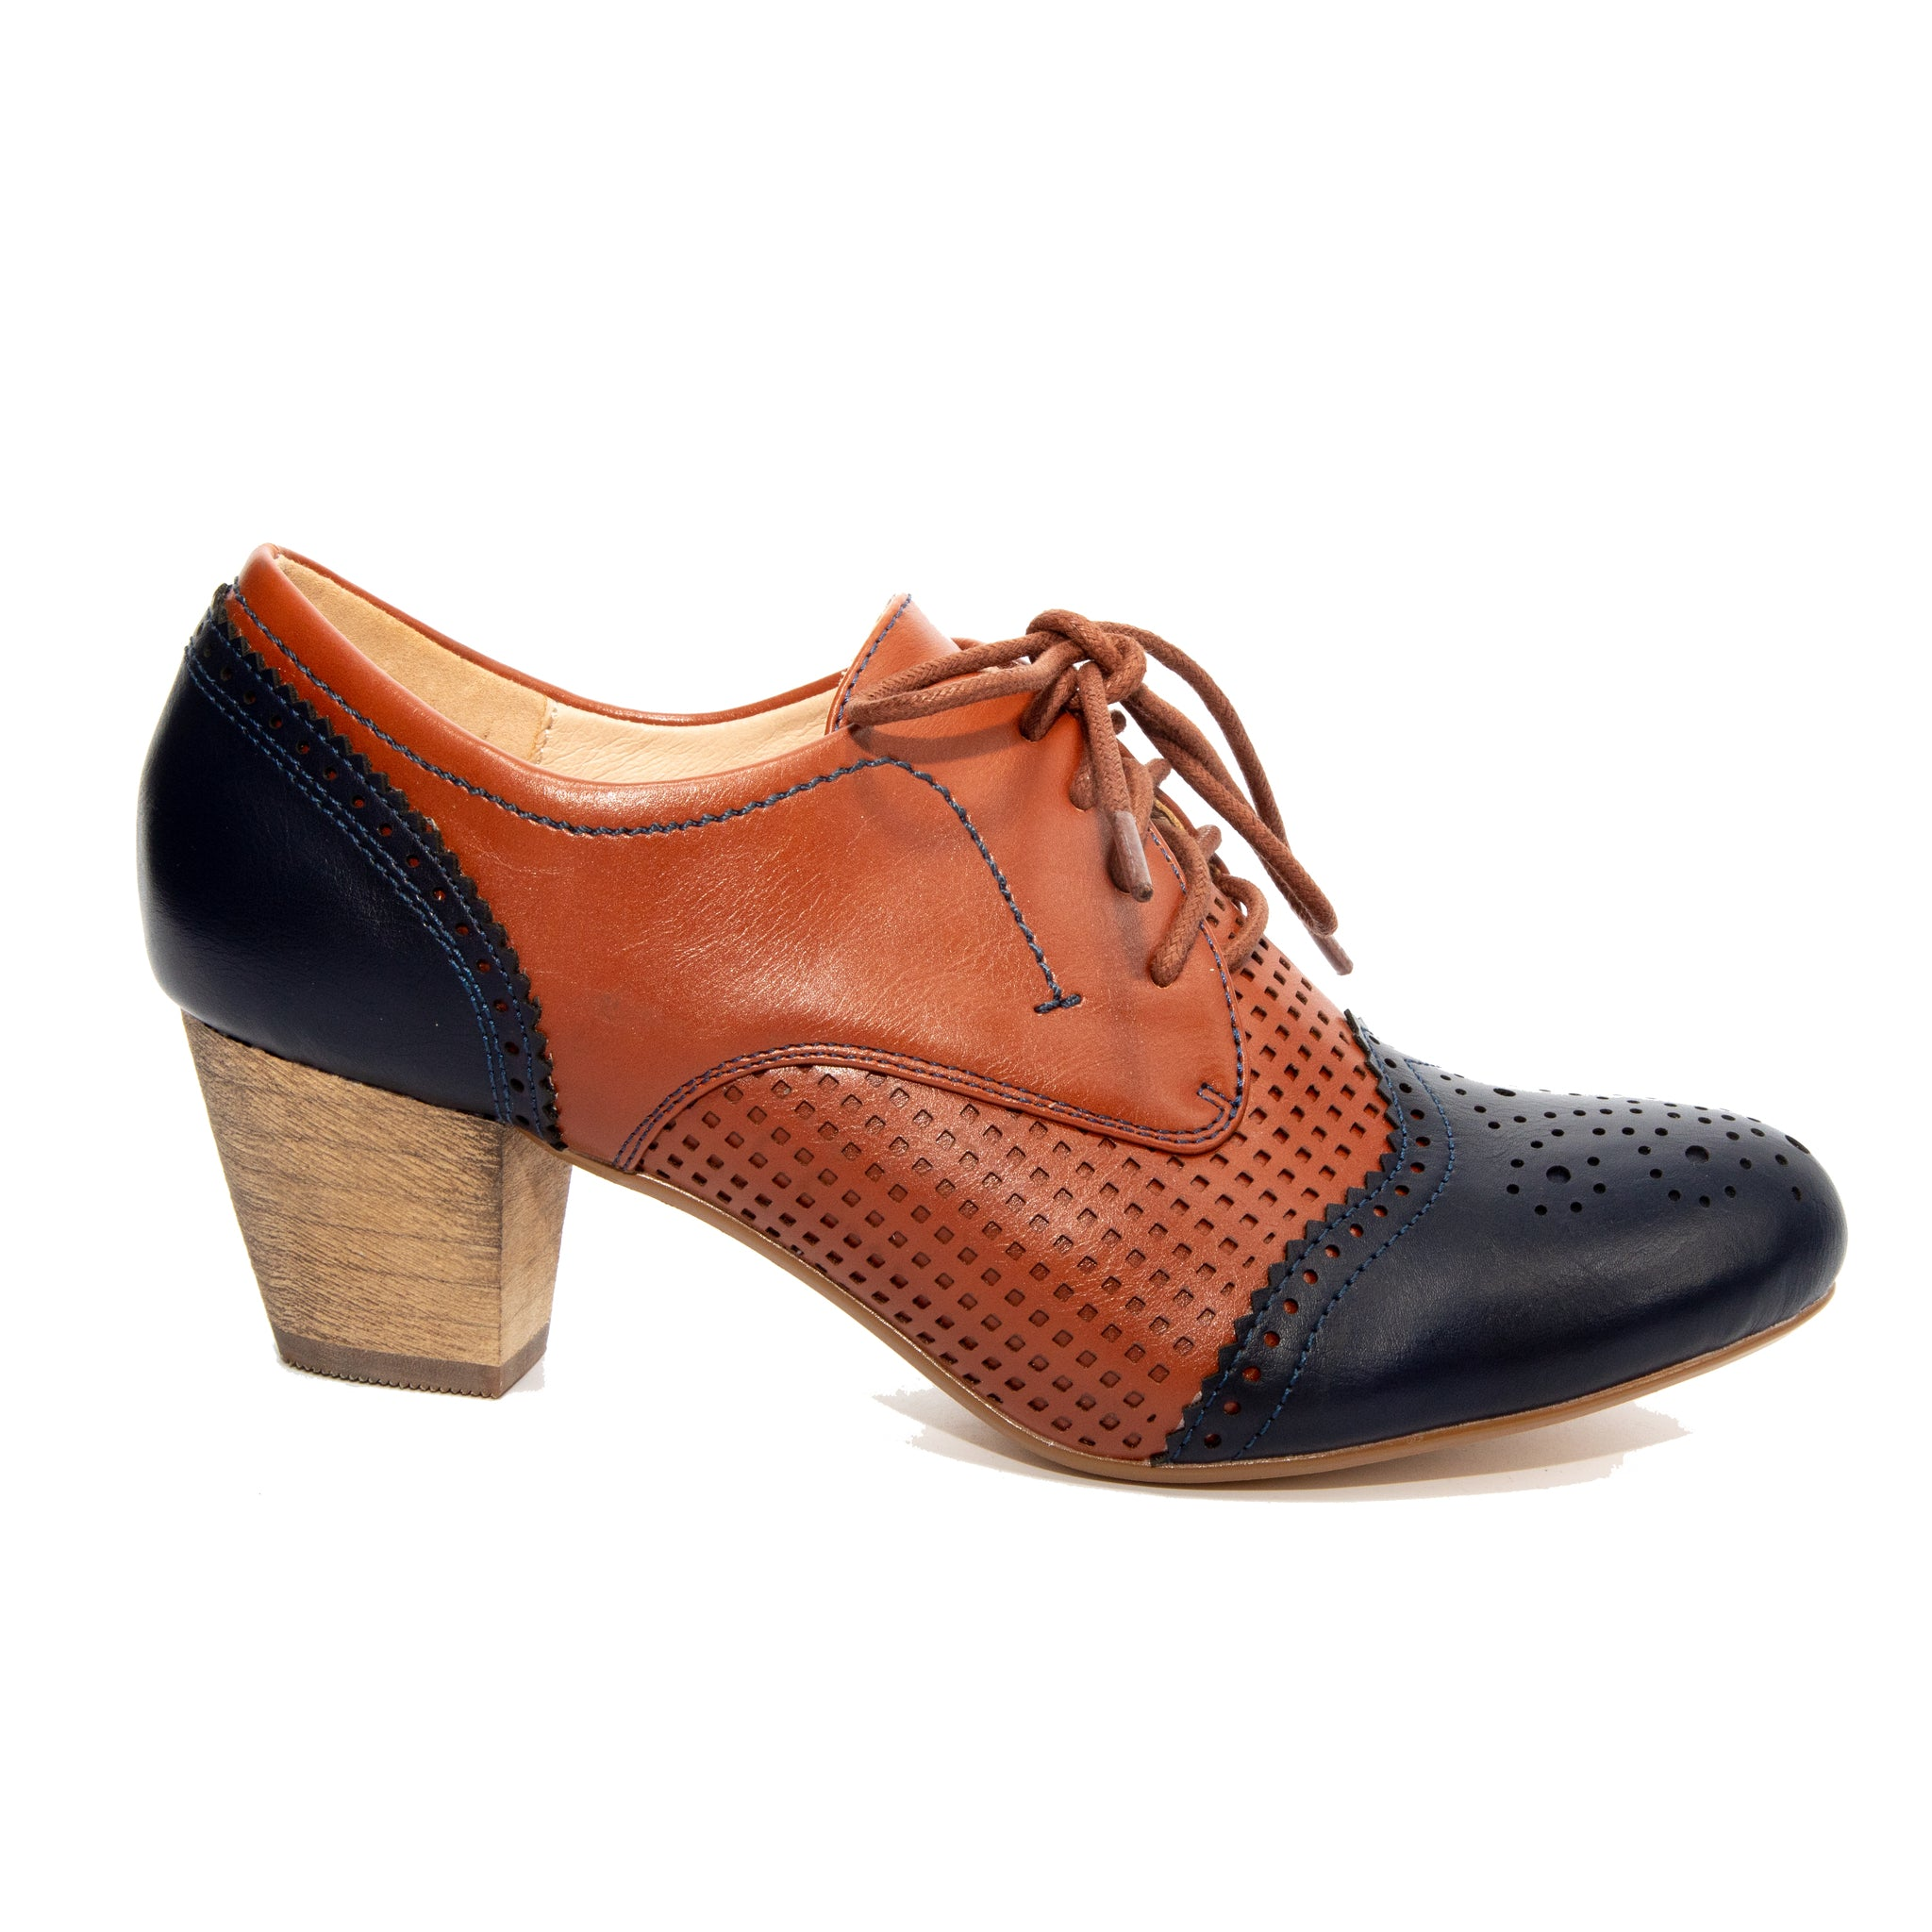 Selma by Dolce Nome | Two-Tone Oxford Pumps in Navy/Whiskey (side view)